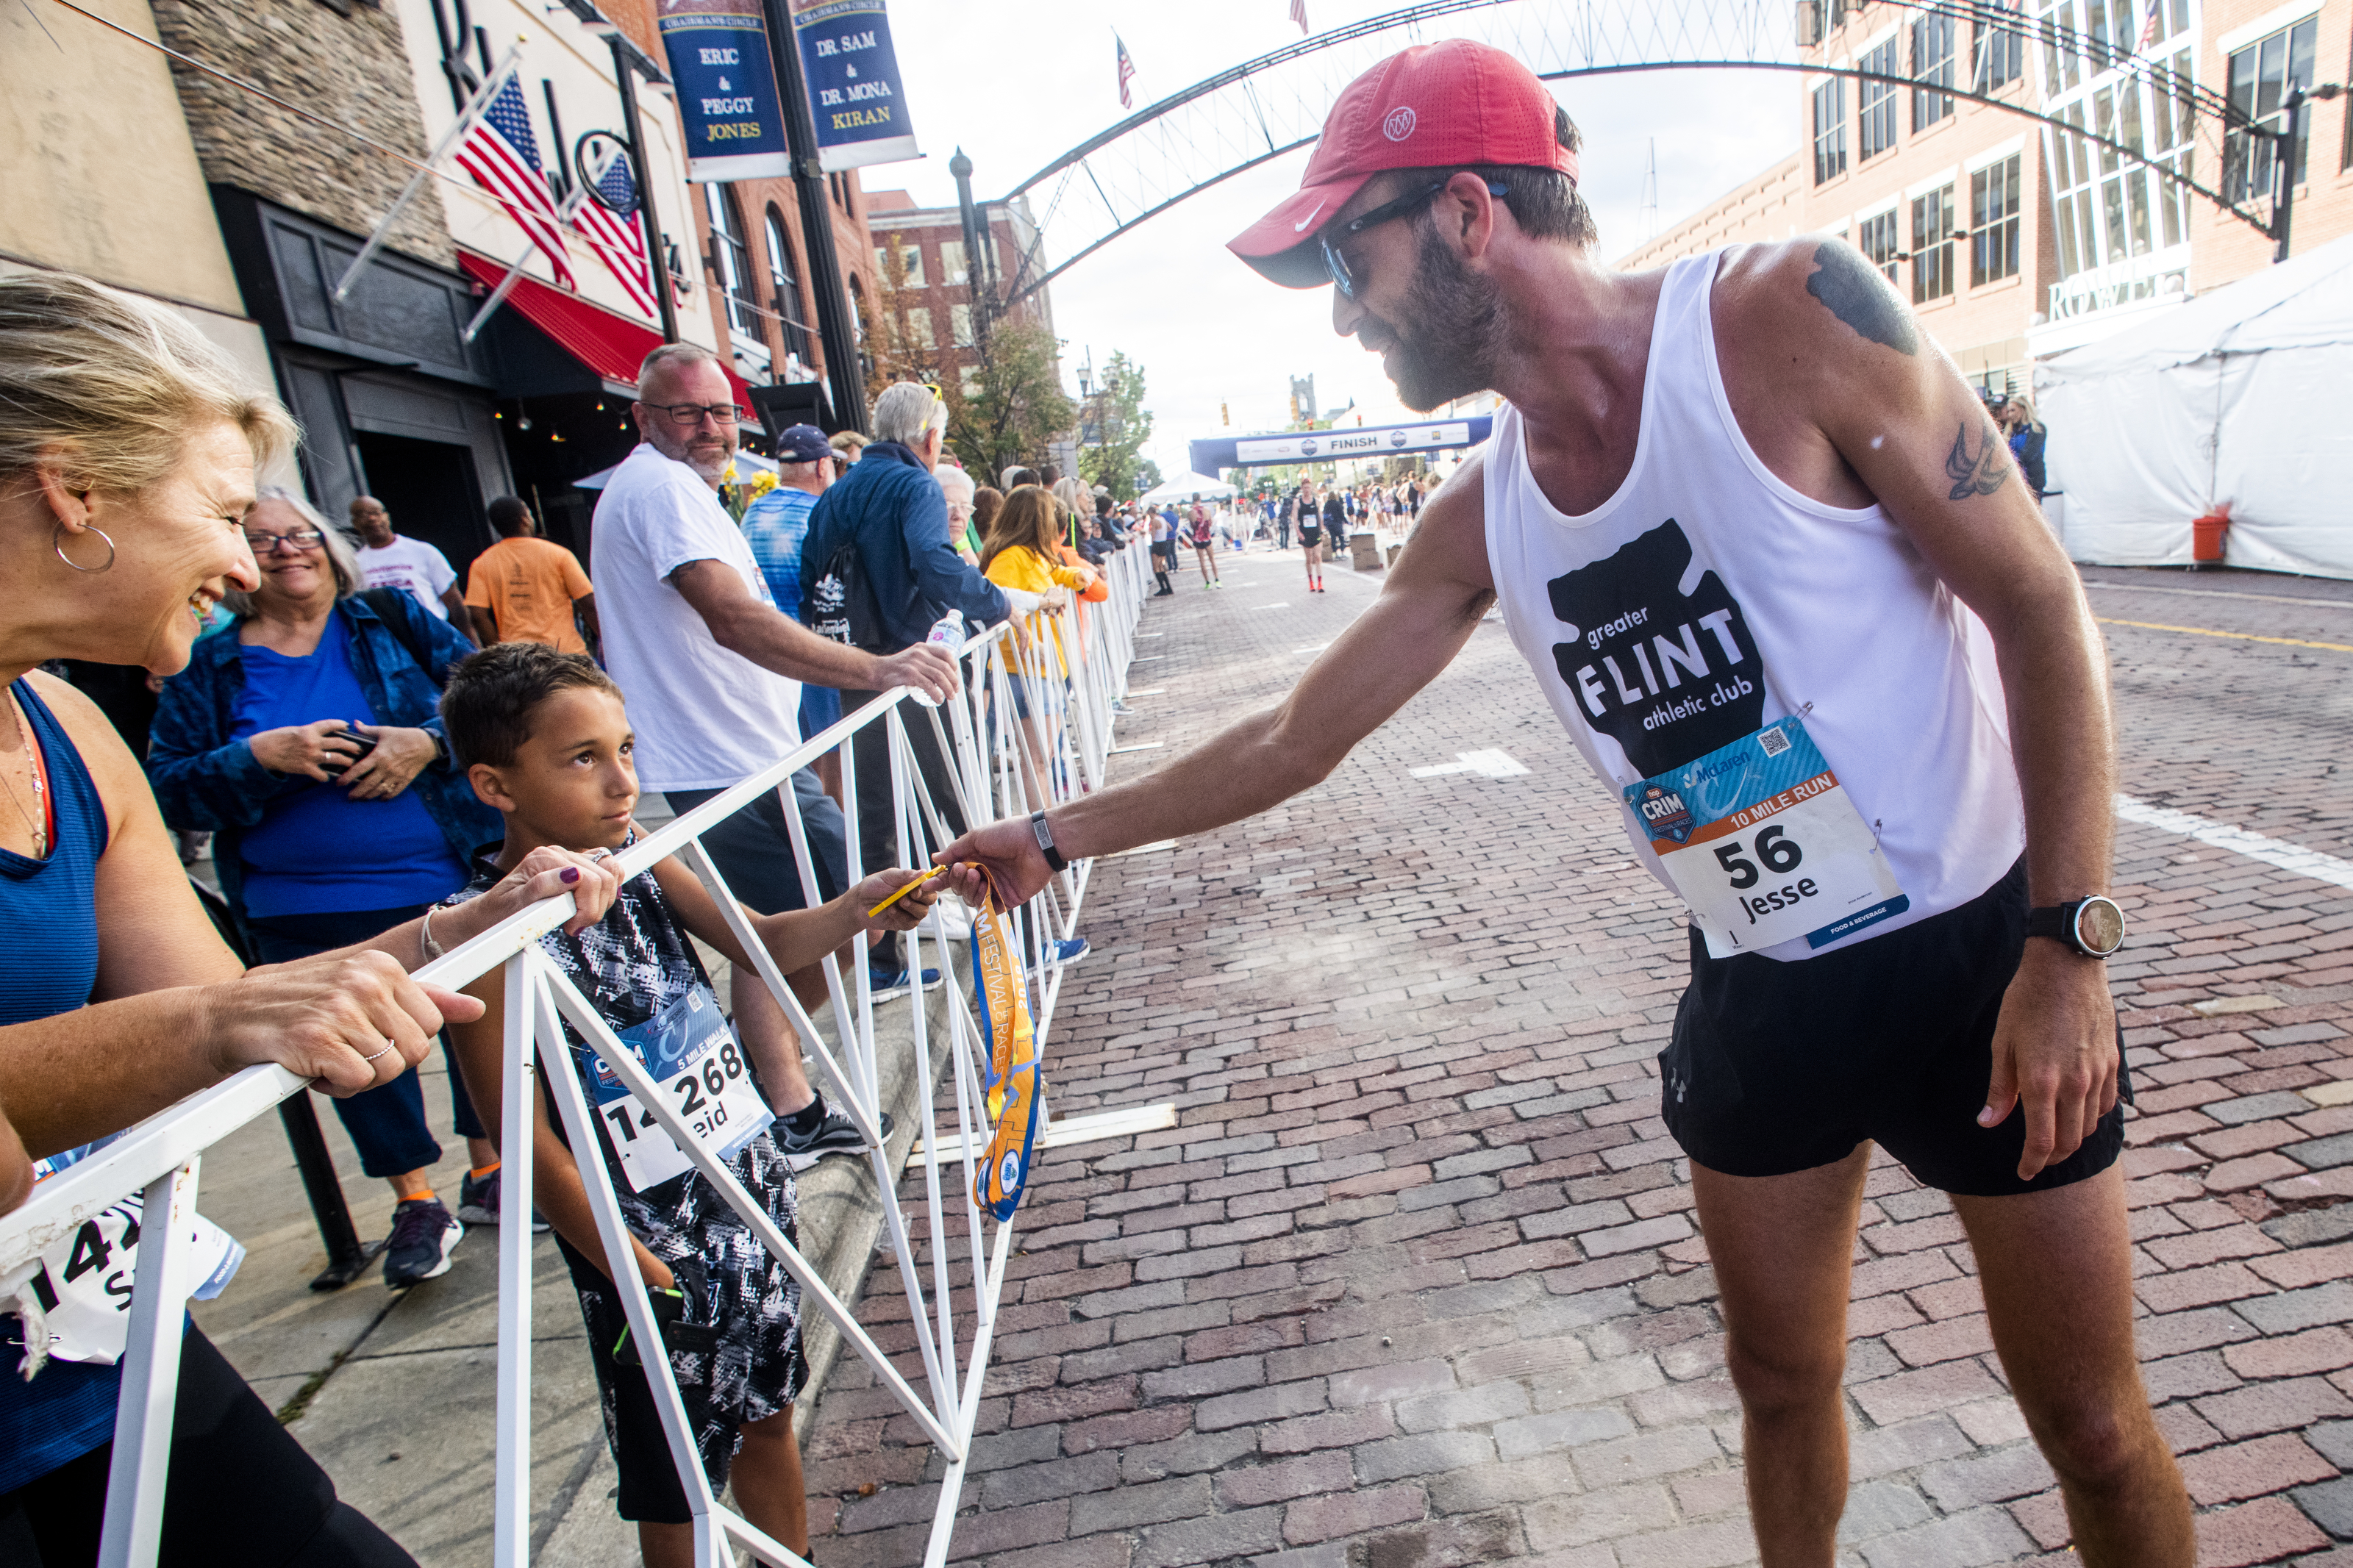 Flint man's family has raced Crim for three generations and running